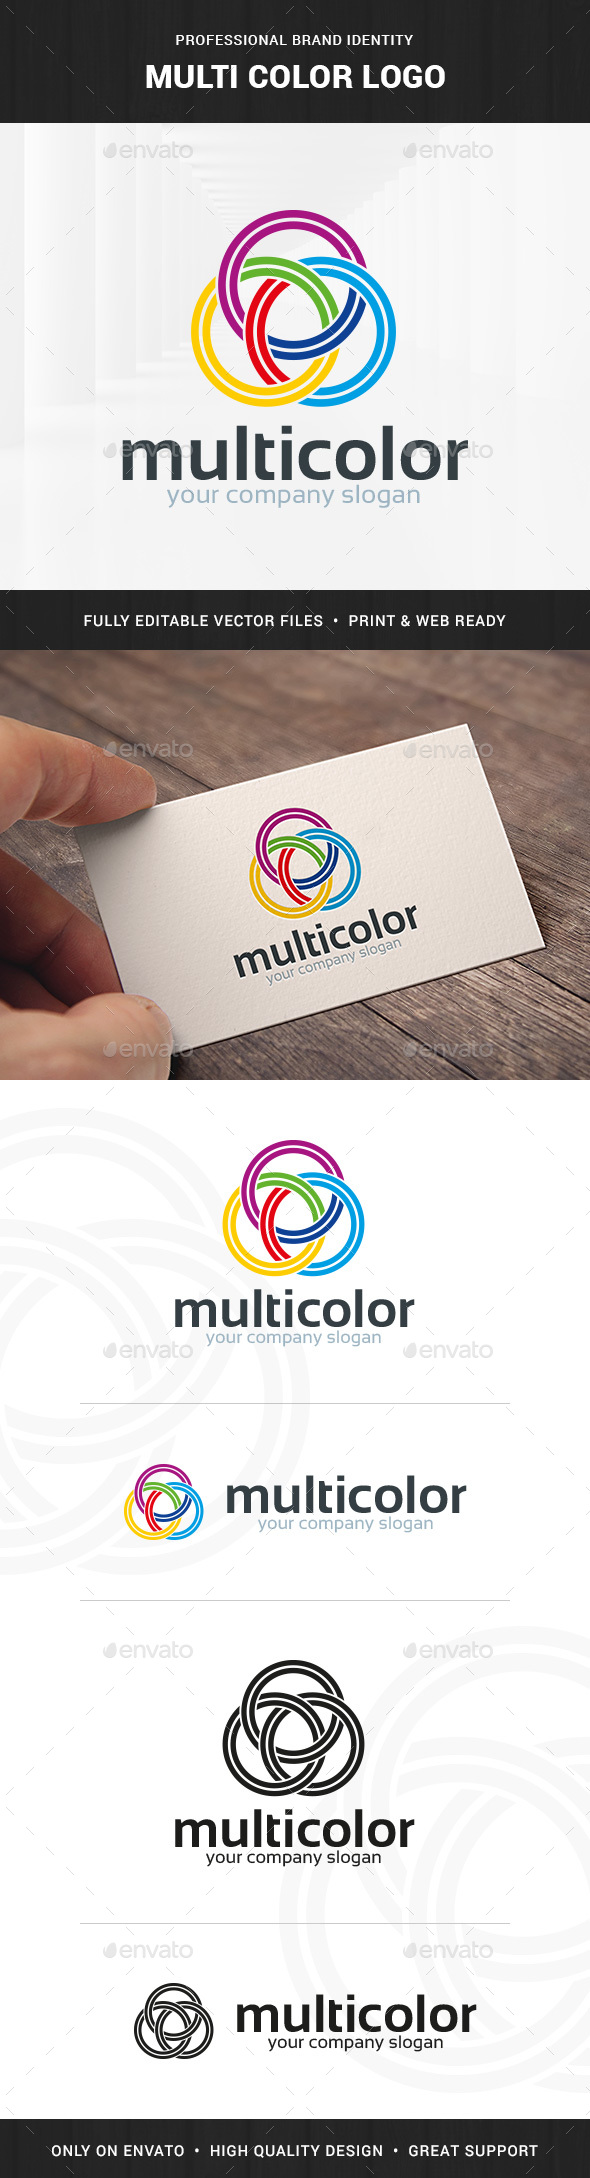 Multi Color Logo Template - Abstract Logo Templates